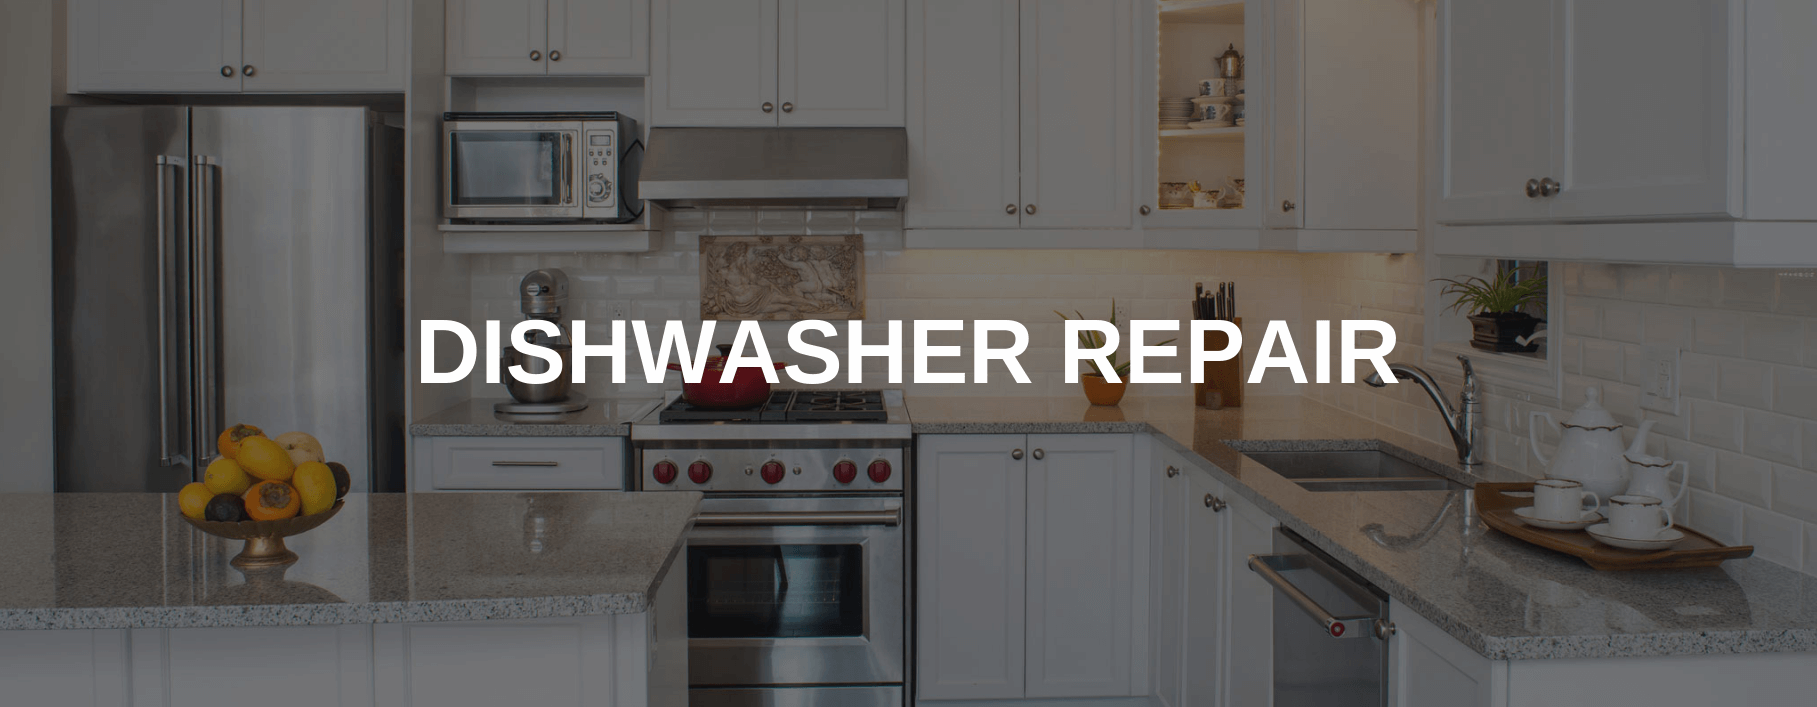 dishwasher repair pasadena